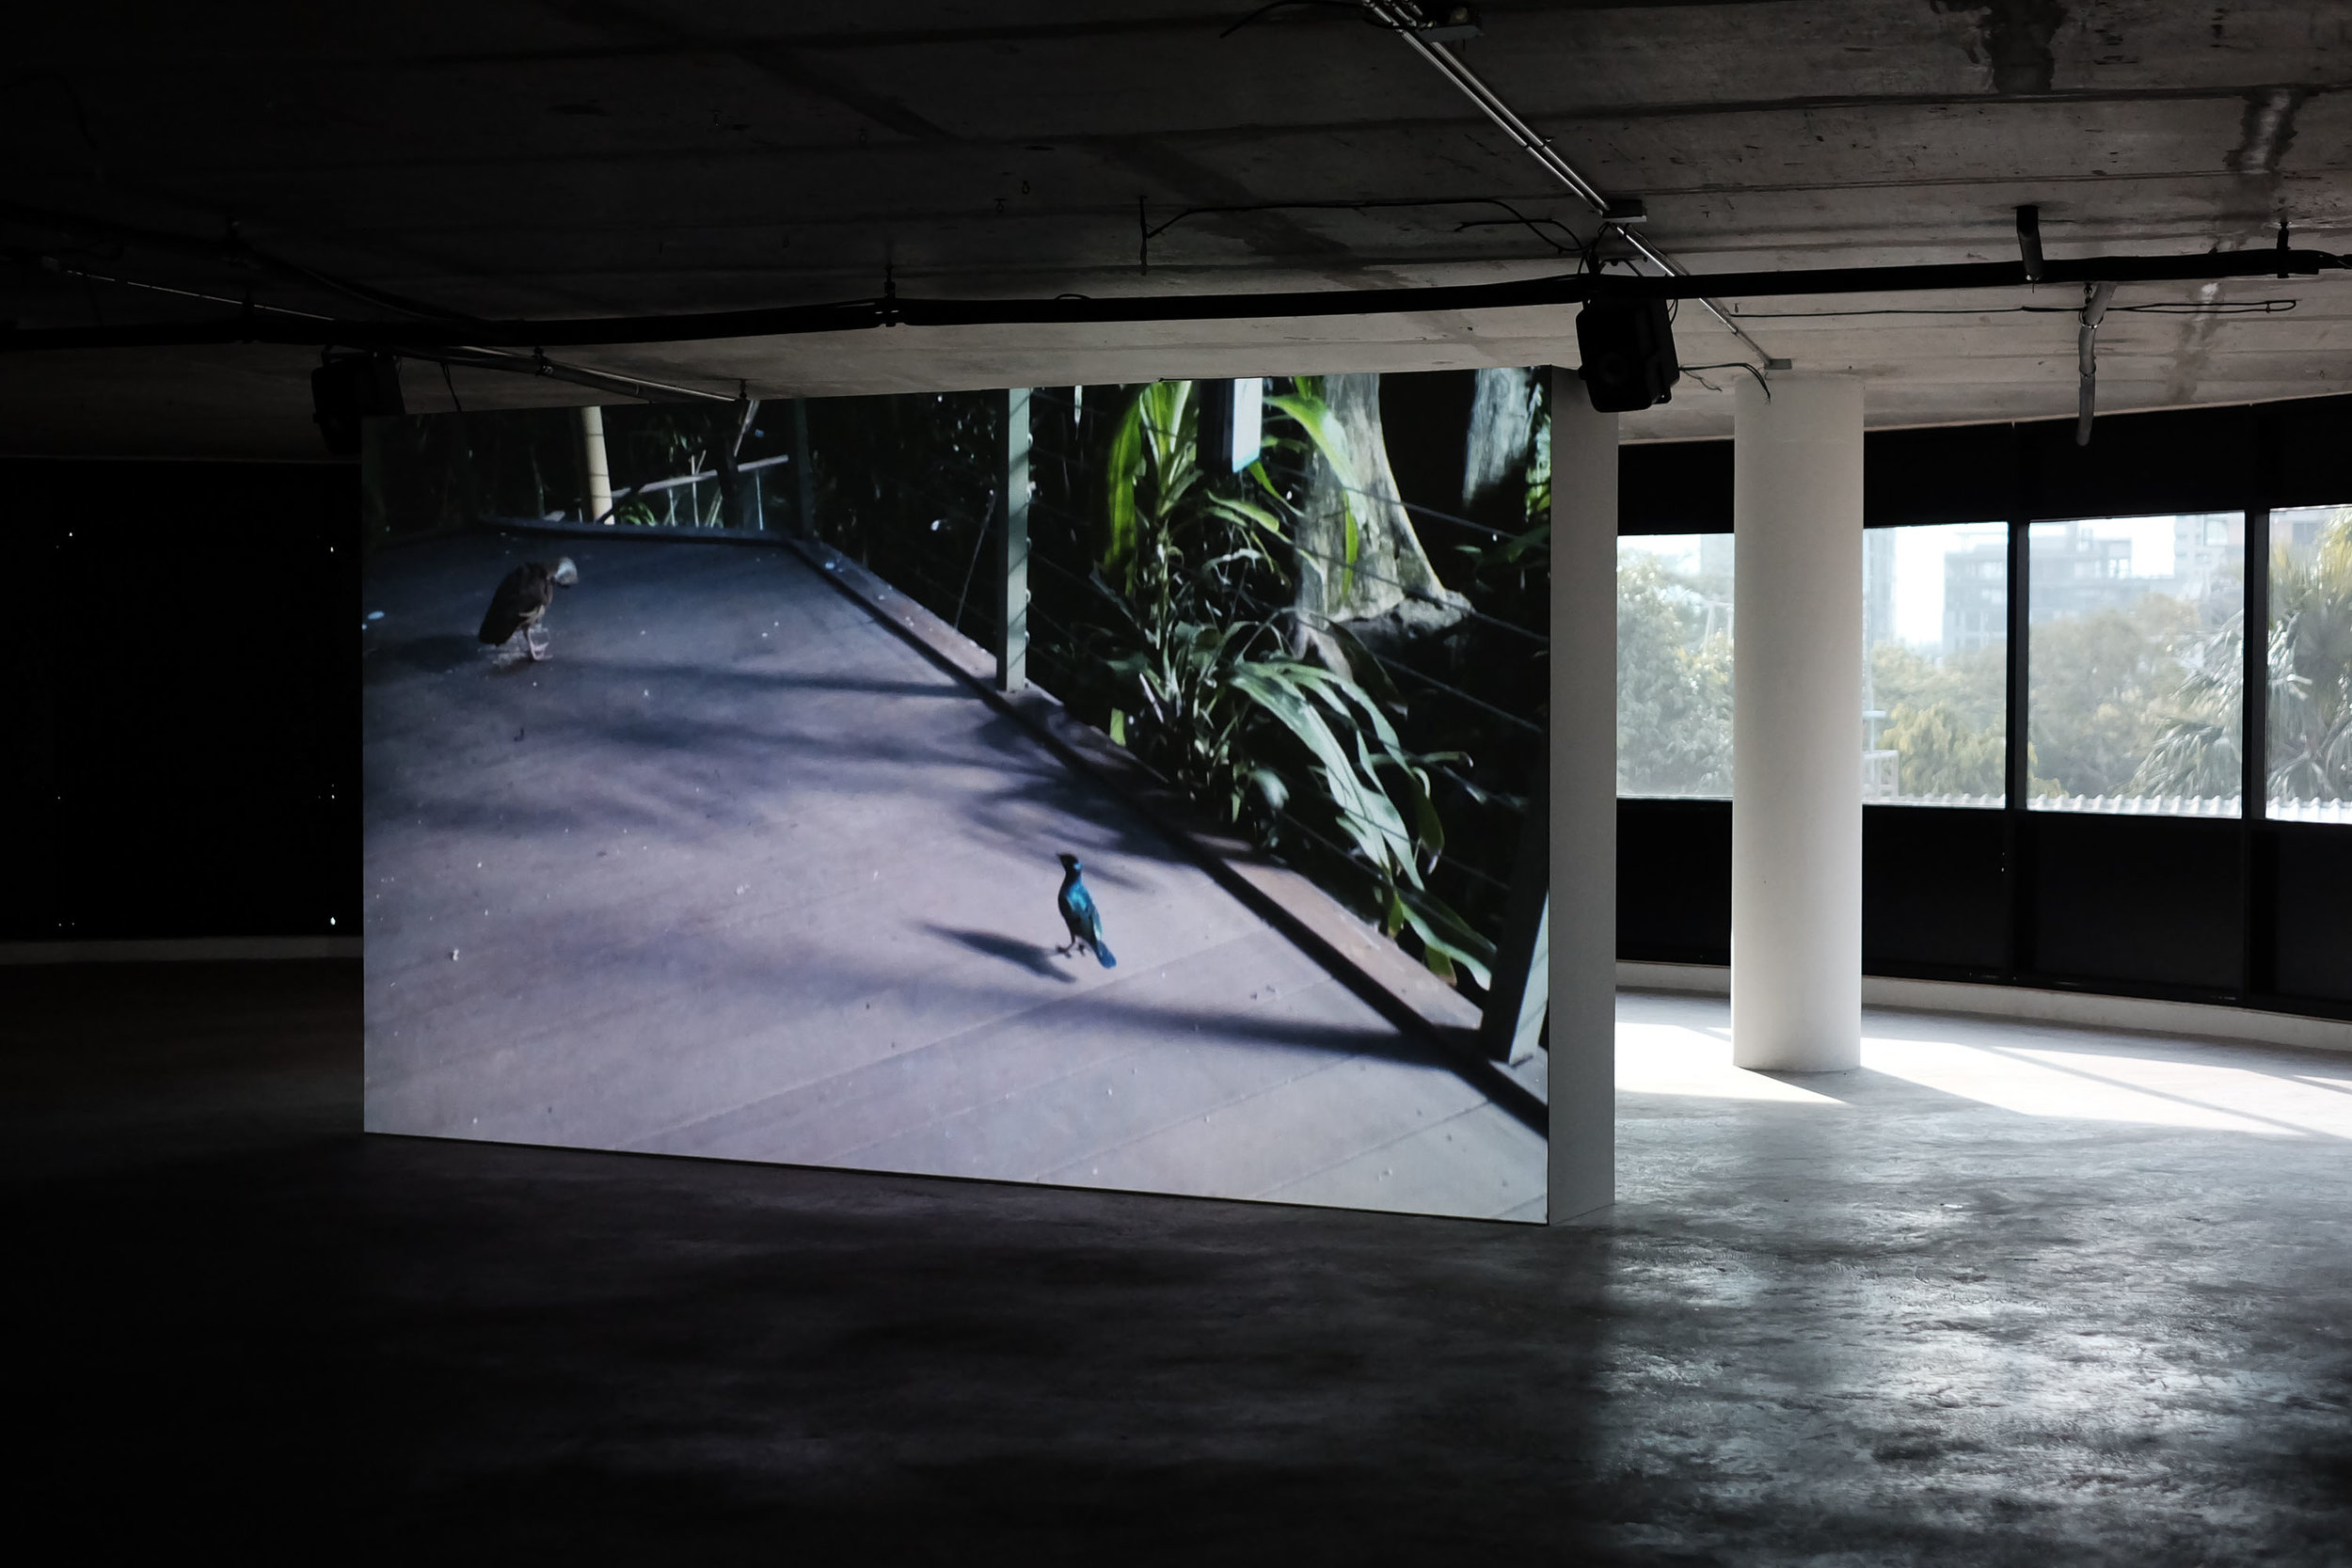 Installation view of Rachel Rose's video installation 'SITTING FEEDING SLEEPING' (2013), presented as part of Ghost:2561 at Nova Project Space. Image courtesy of the artist and Nova Contemporary.